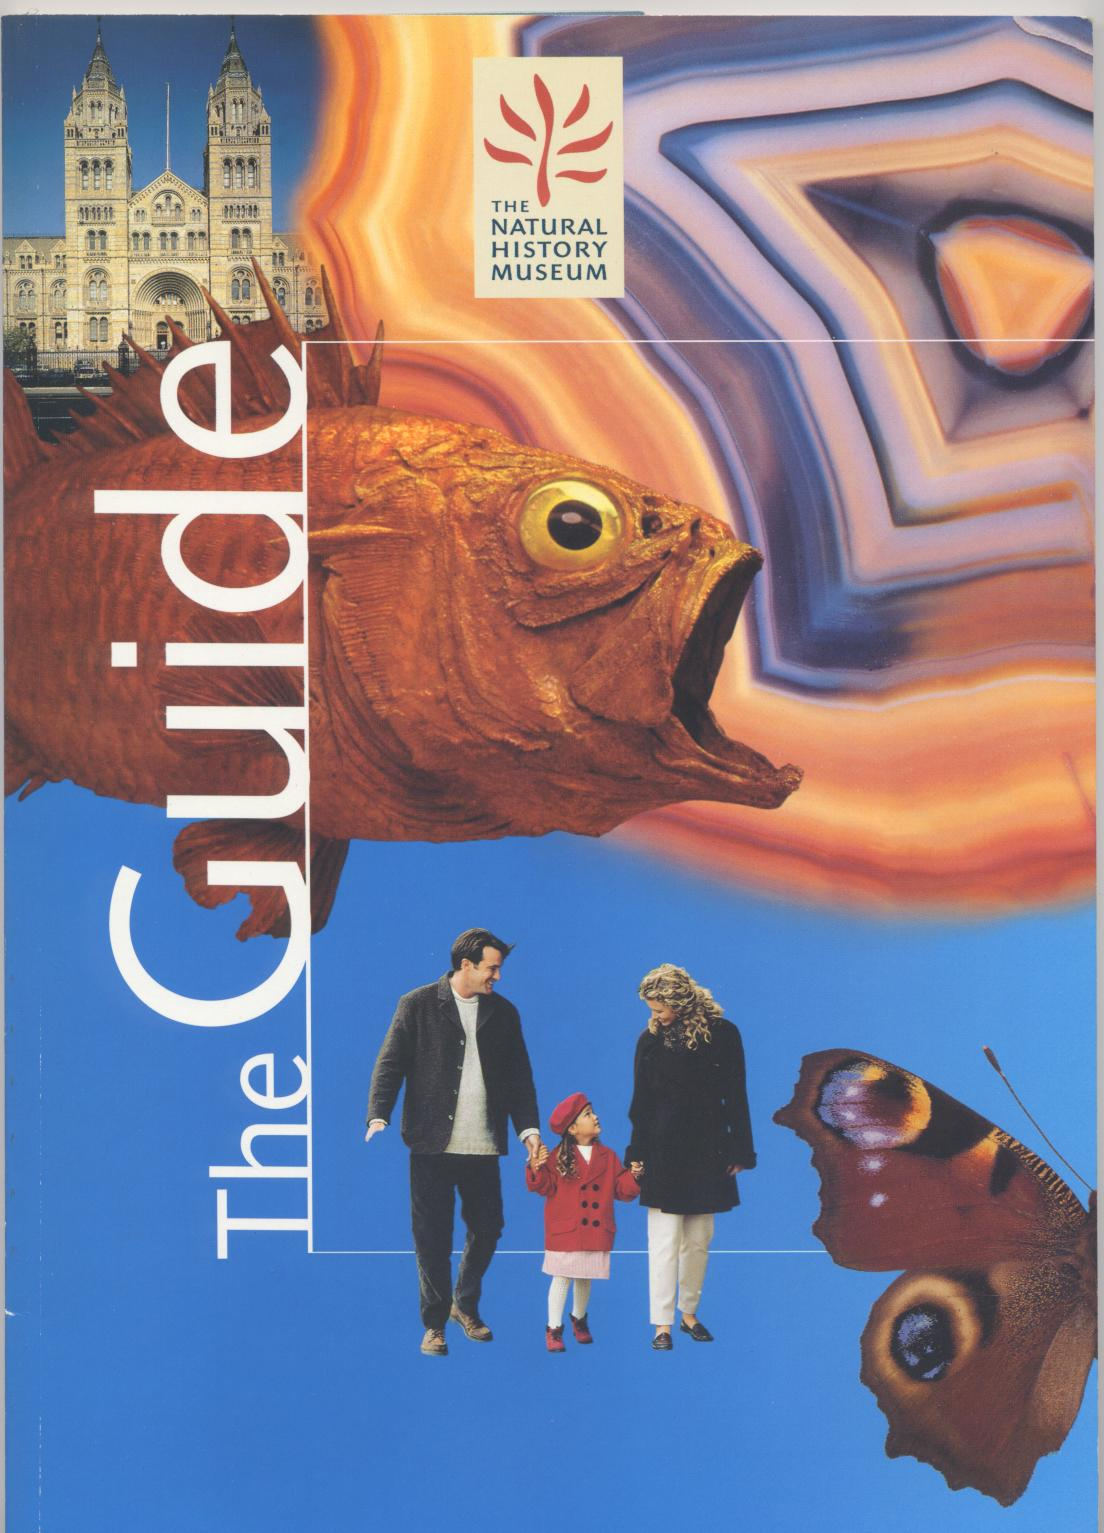 The Guide - The Natural History Museum